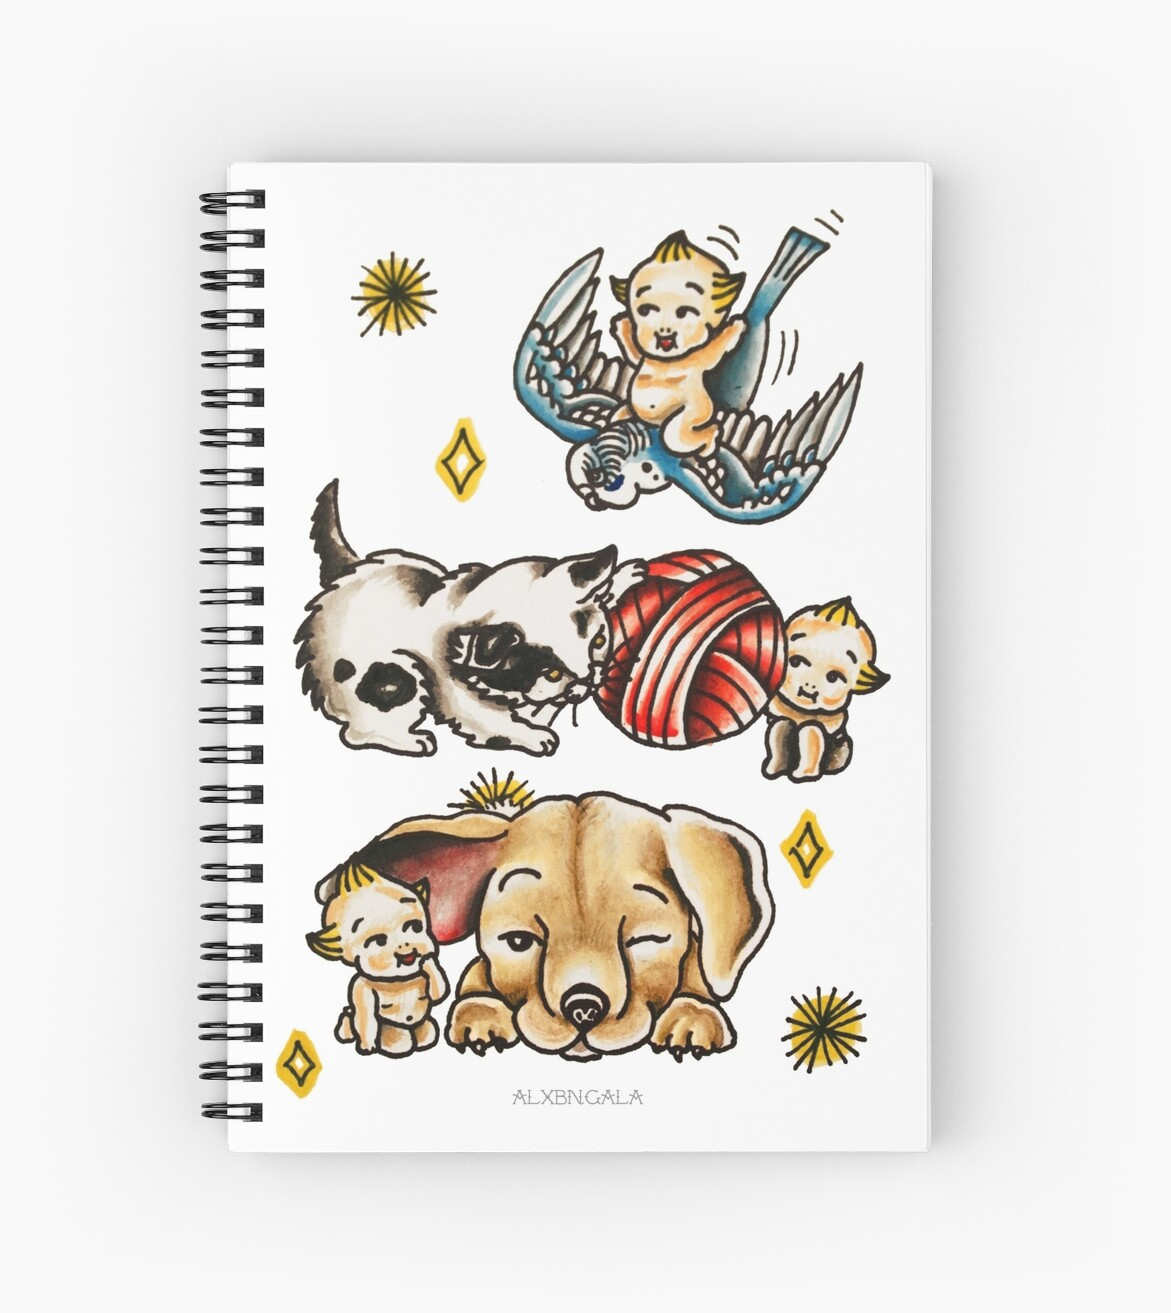 Kewpies & Baby Animals Flash  by alxbngala